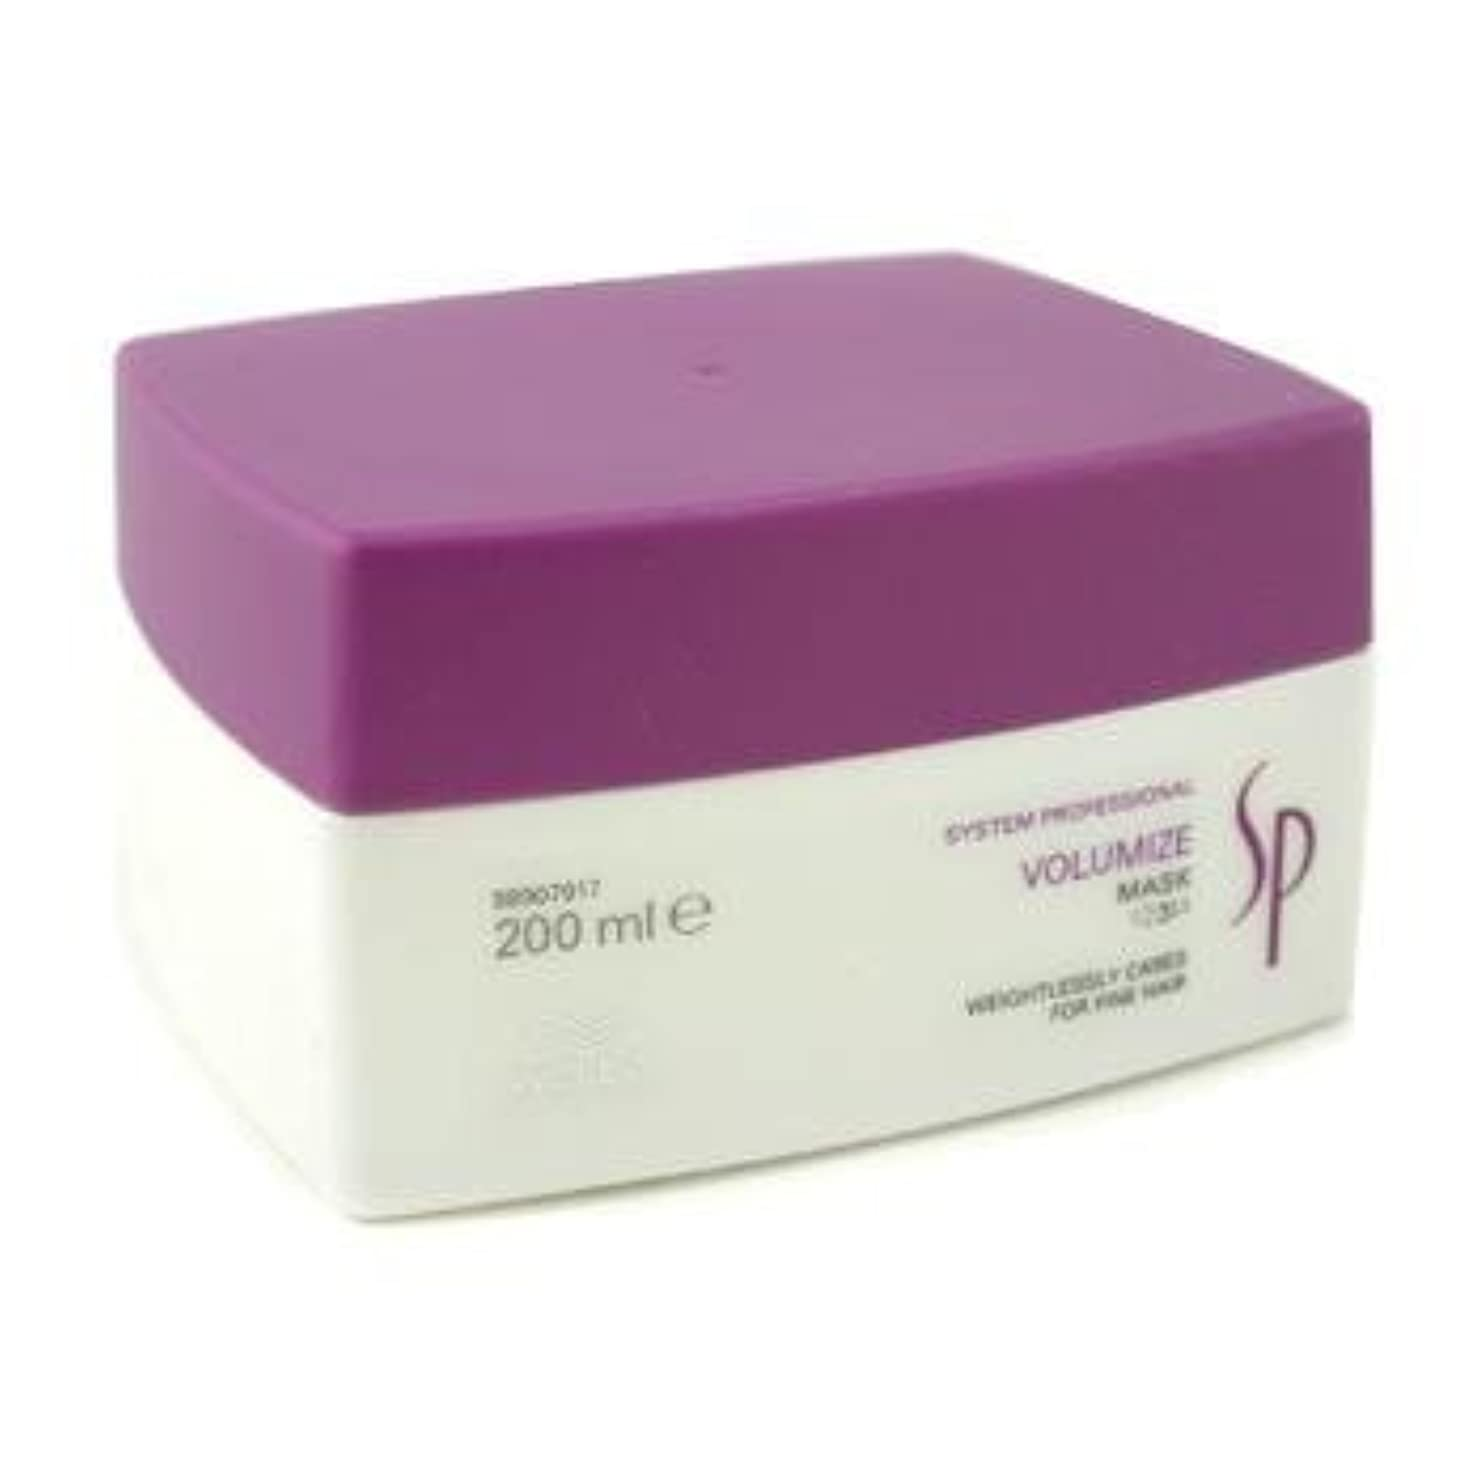 好ましい引くめんどりWella SP Volumize Mask (For Fine Hair) - 200ml/6.67oz by Wella [並行輸入品]